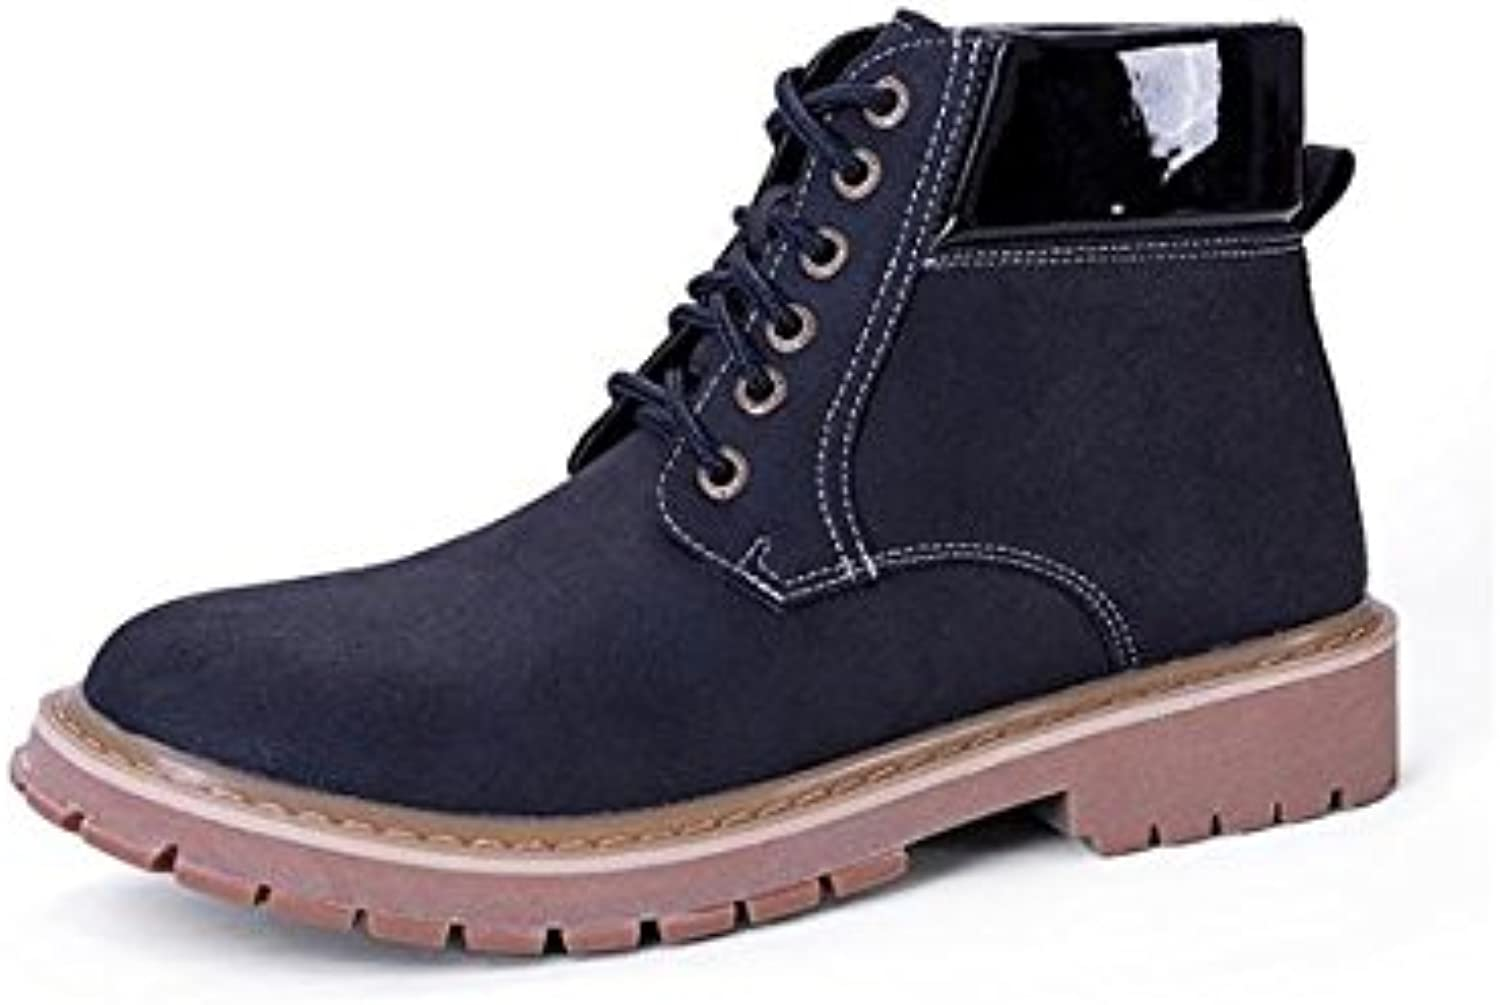 Lace Men's waterproof England wind boots winter casual classic , 45